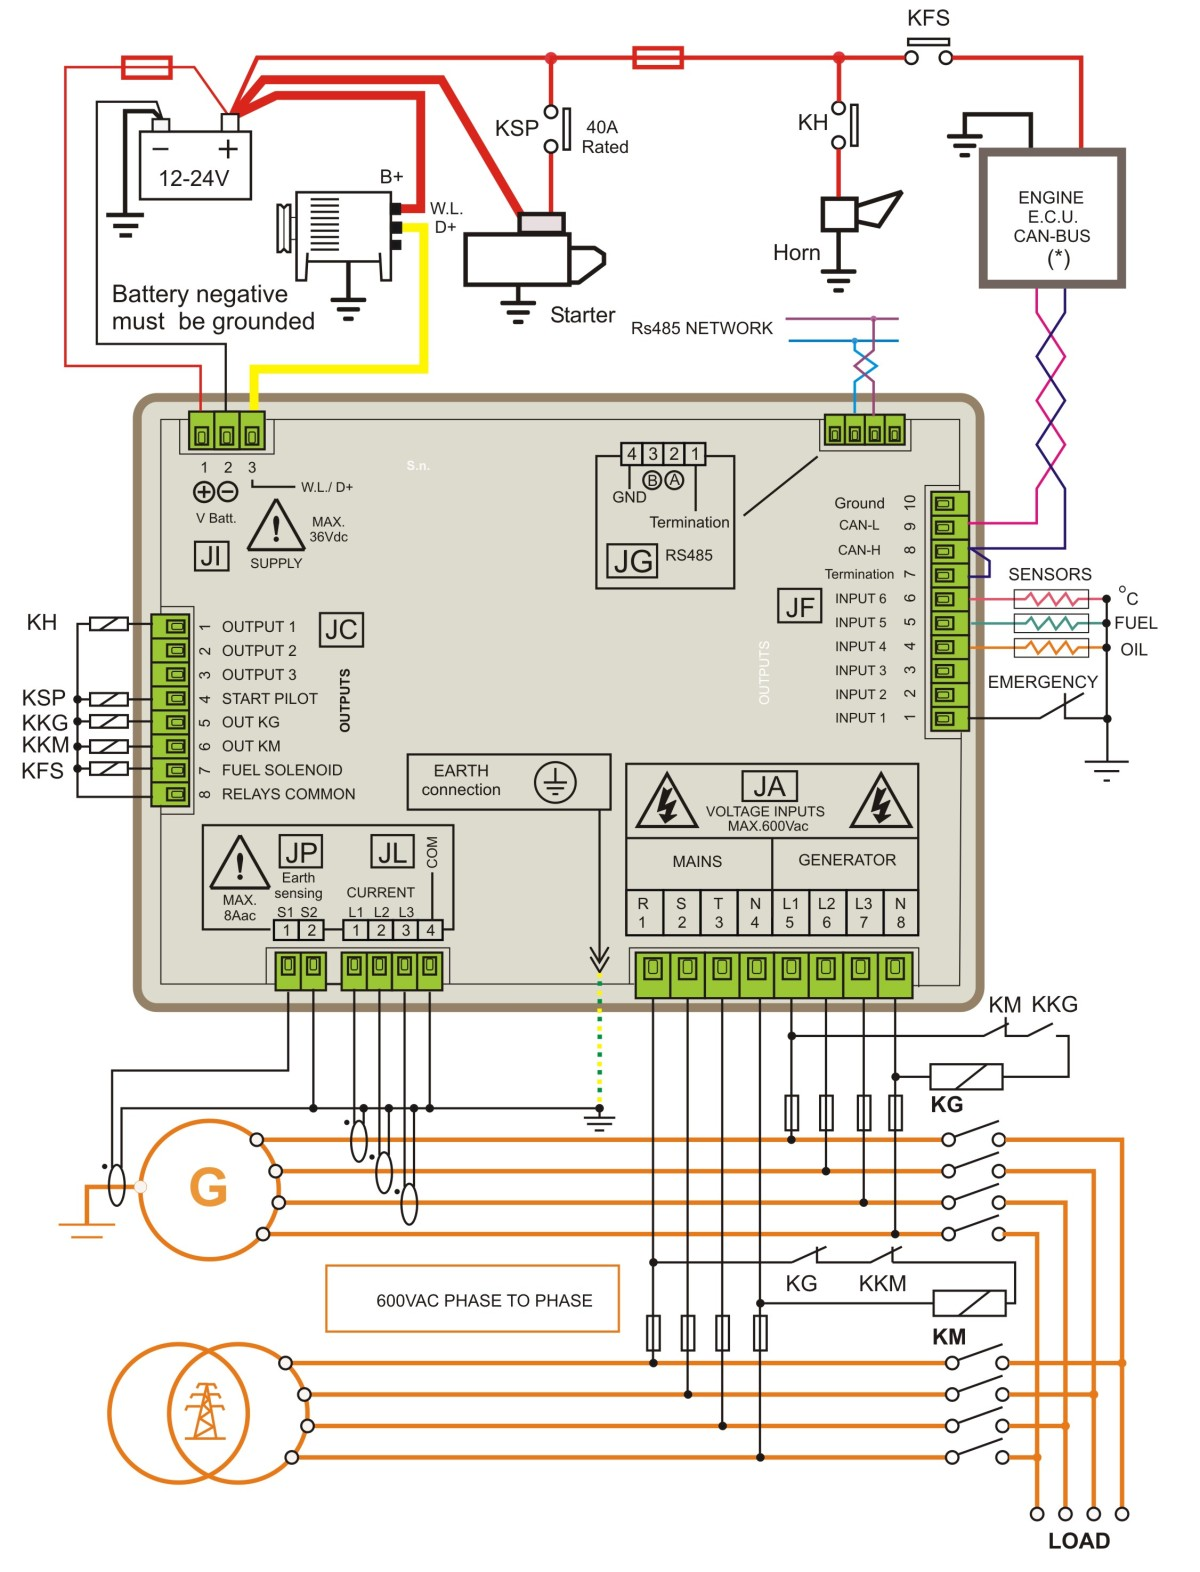 Diesel Generator Control Panel Wiring Diagram BeK3 e1450881313642 wiring diagram generator readingrat net newage stamford generator wiring diagram at virtualis.co